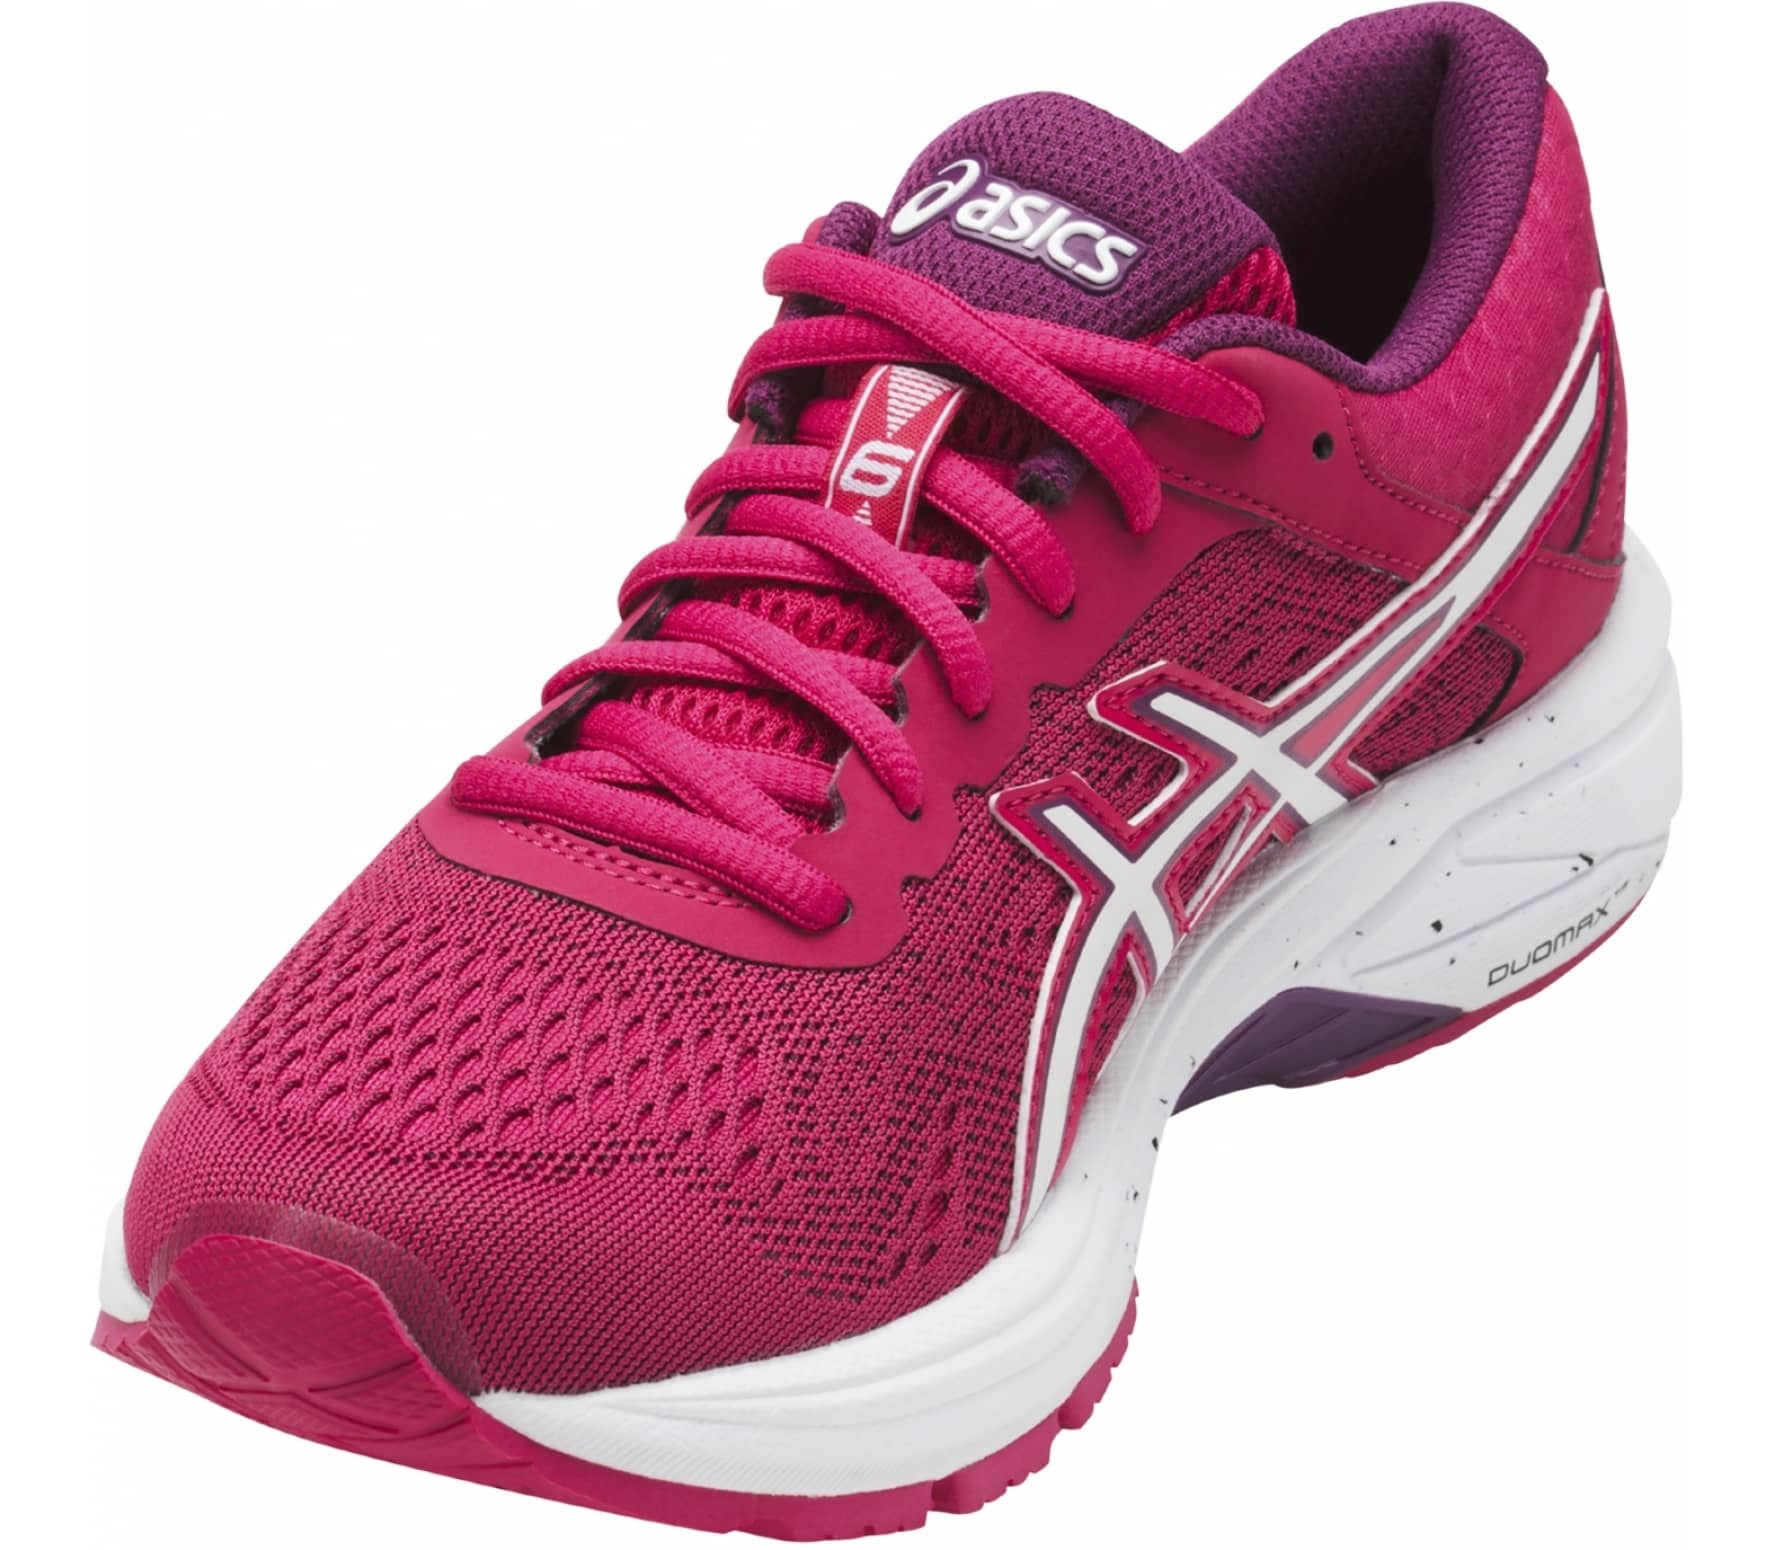 Asics - GT-1000 6 women s running shoes (pink white) - buy it at the ... 2cc94a58251f